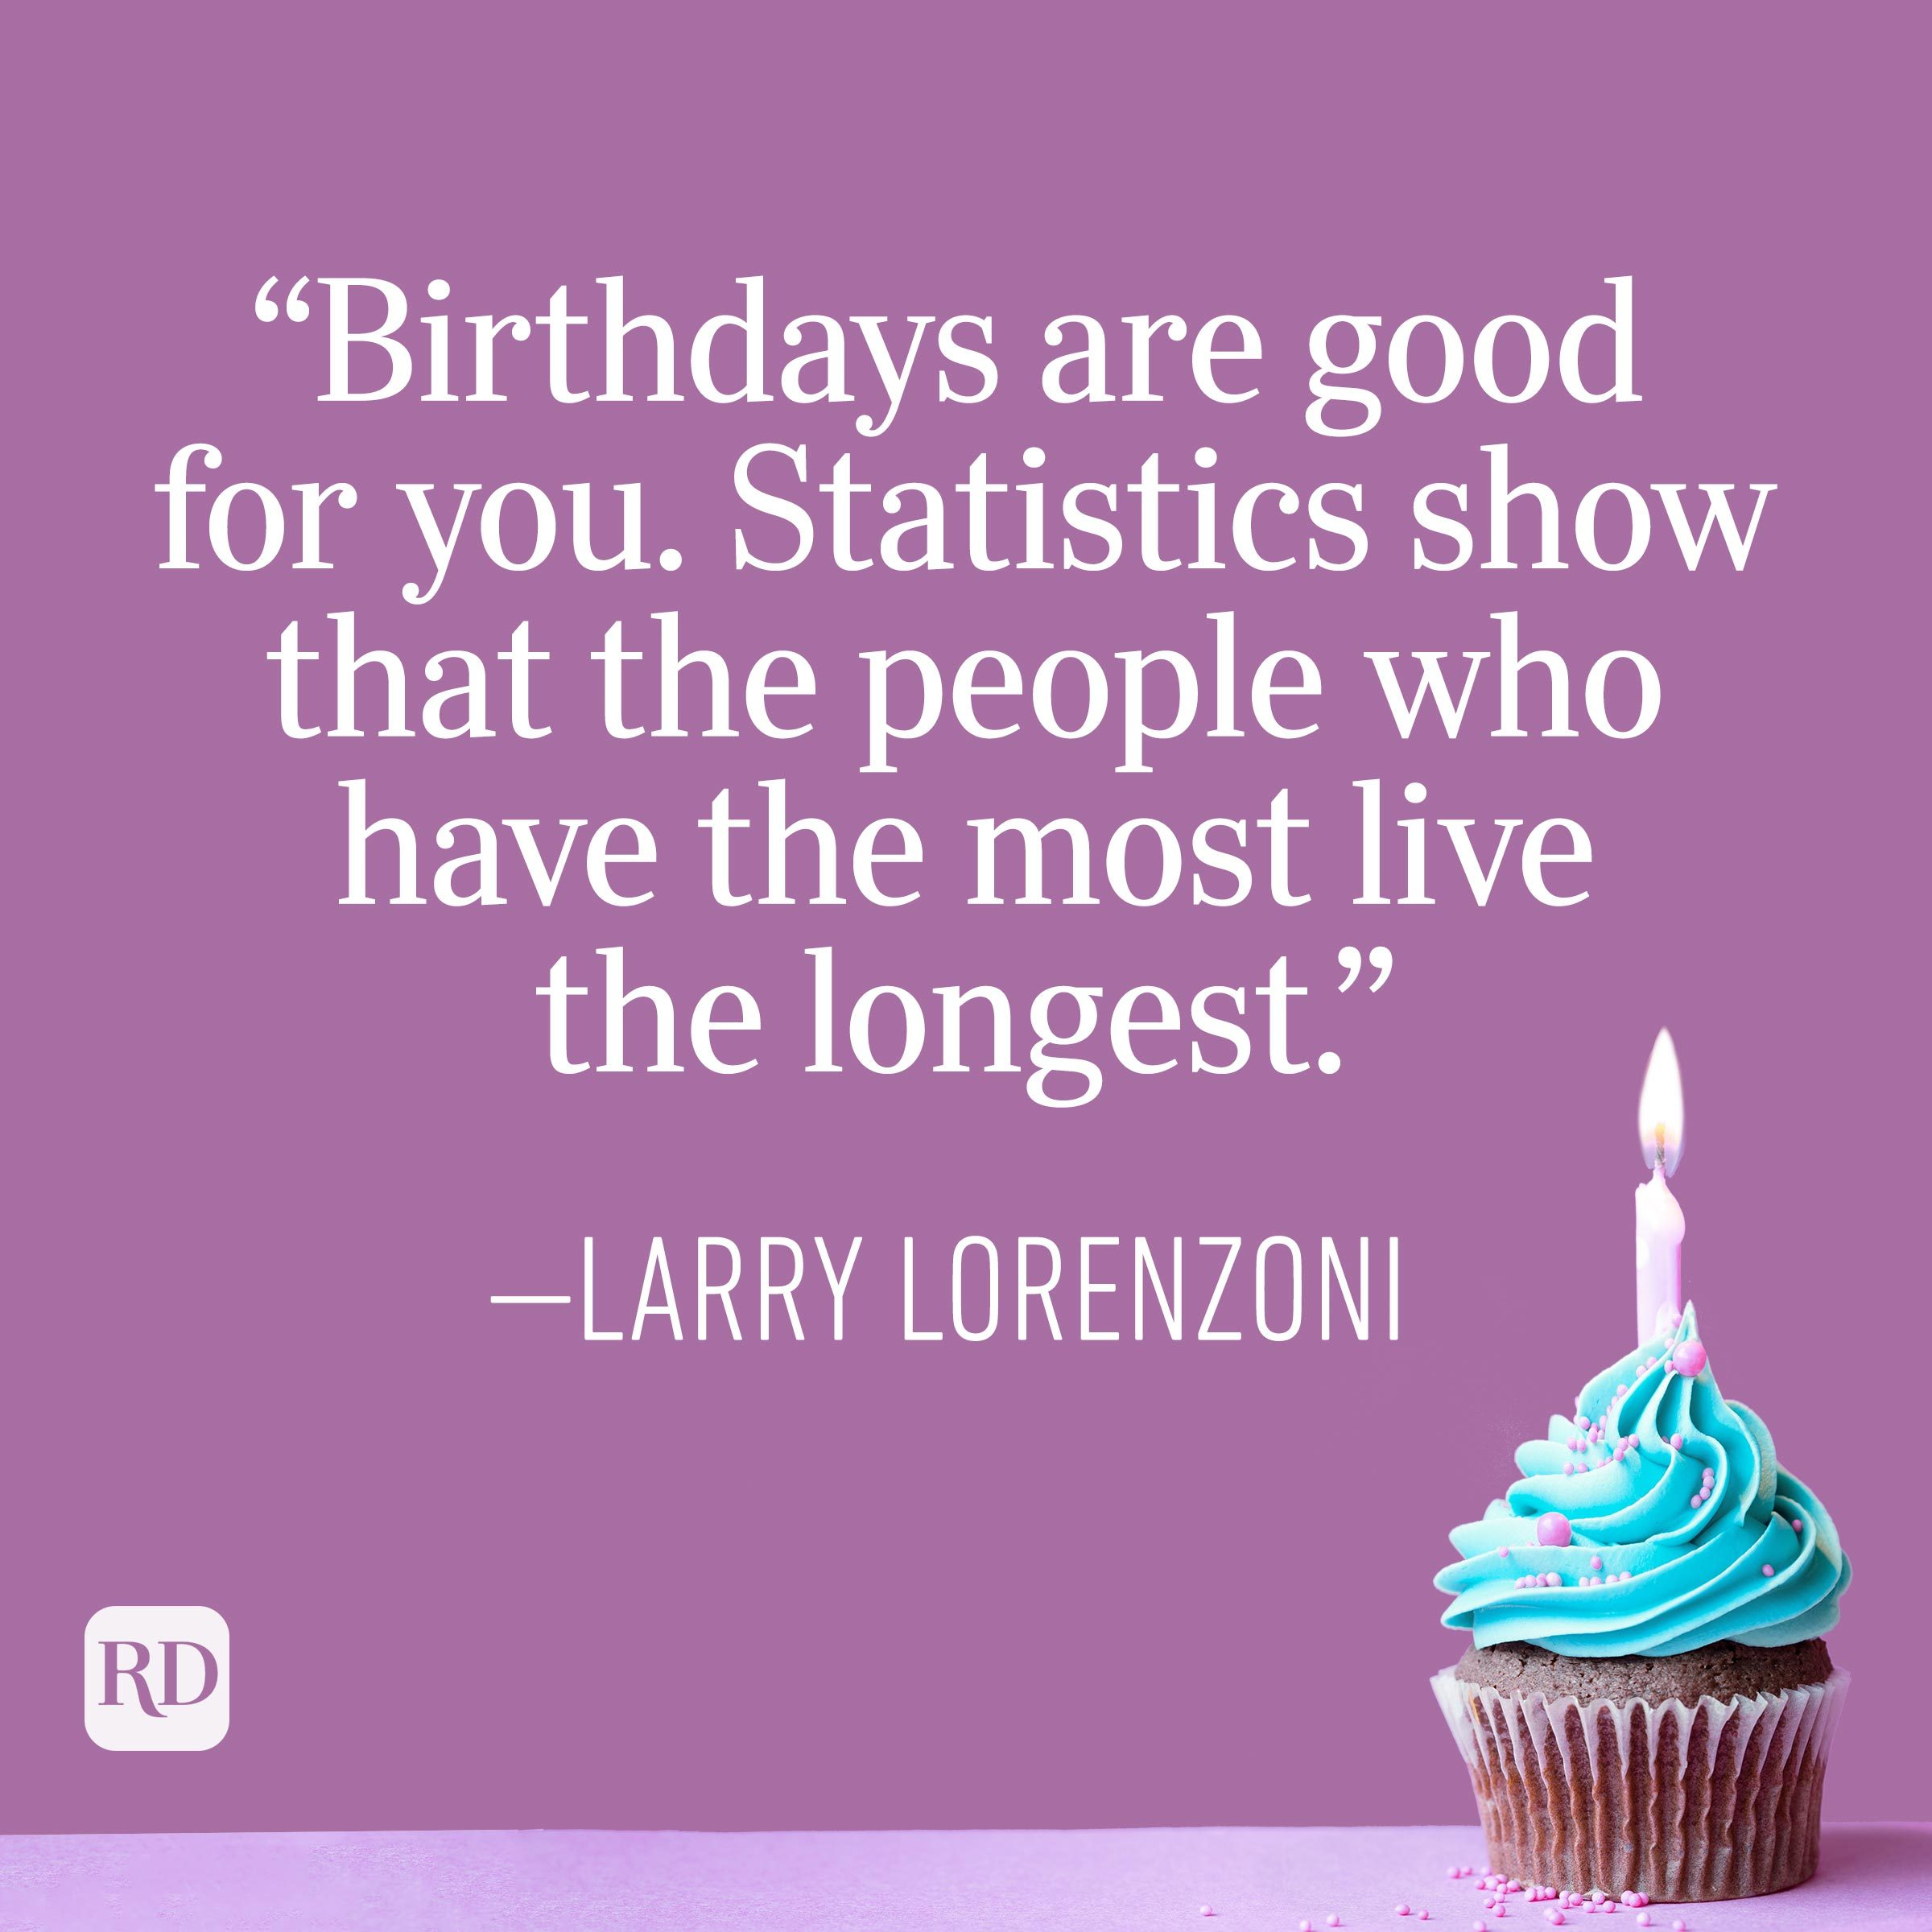 """""""Birthdays are good for you. Statistics show that the people who have the most live the longest."""" —Larry Lorenzoni"""